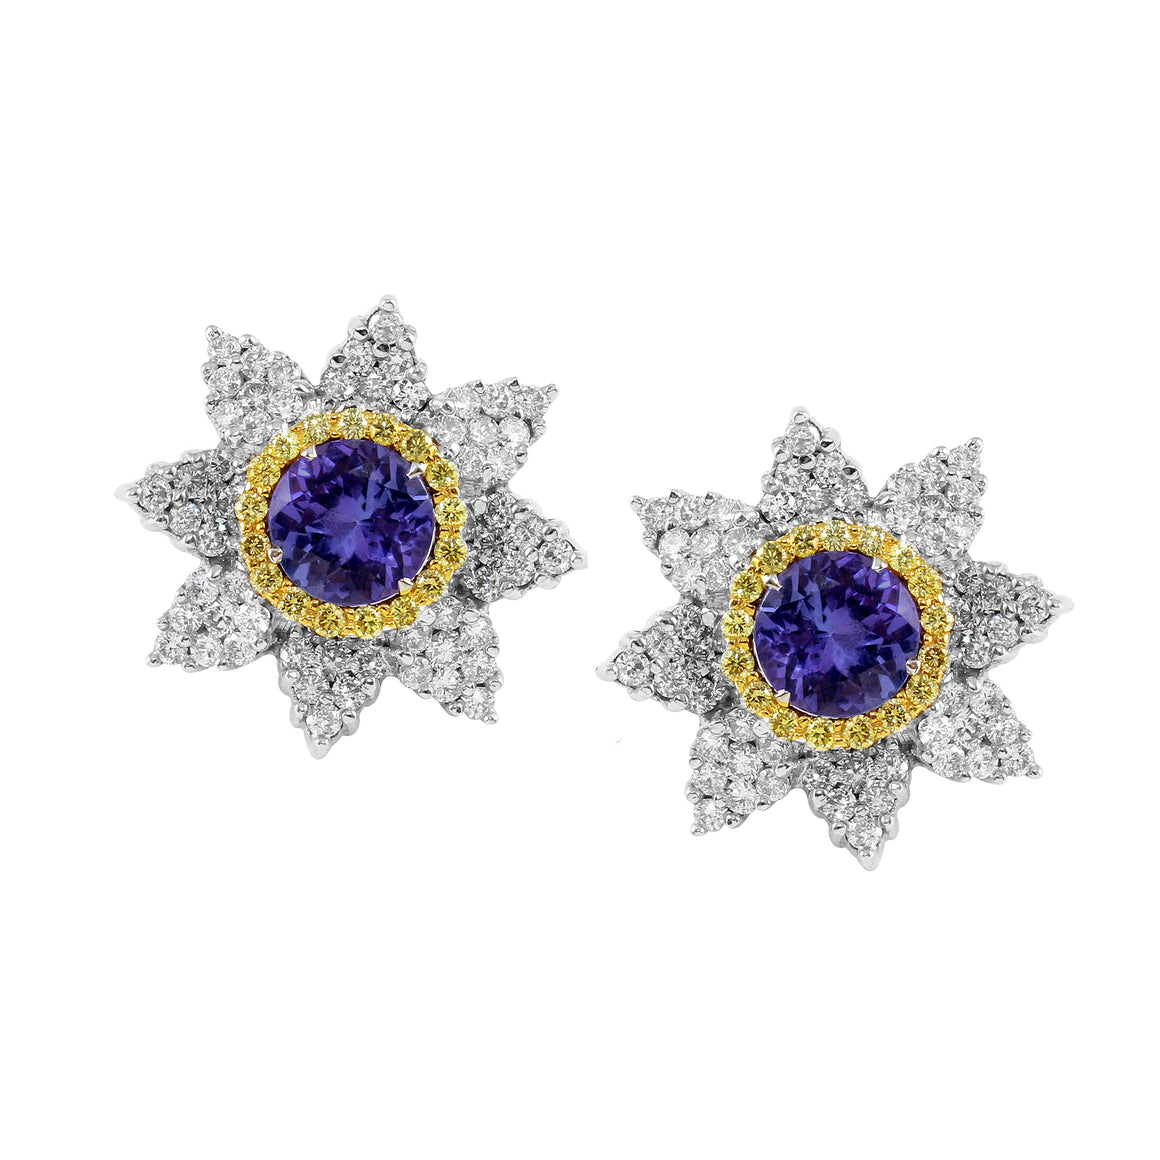 Tanzanite and Yellow Diamond Stud Earrings by Vivaan - Talisman Collection Fine Jewelers